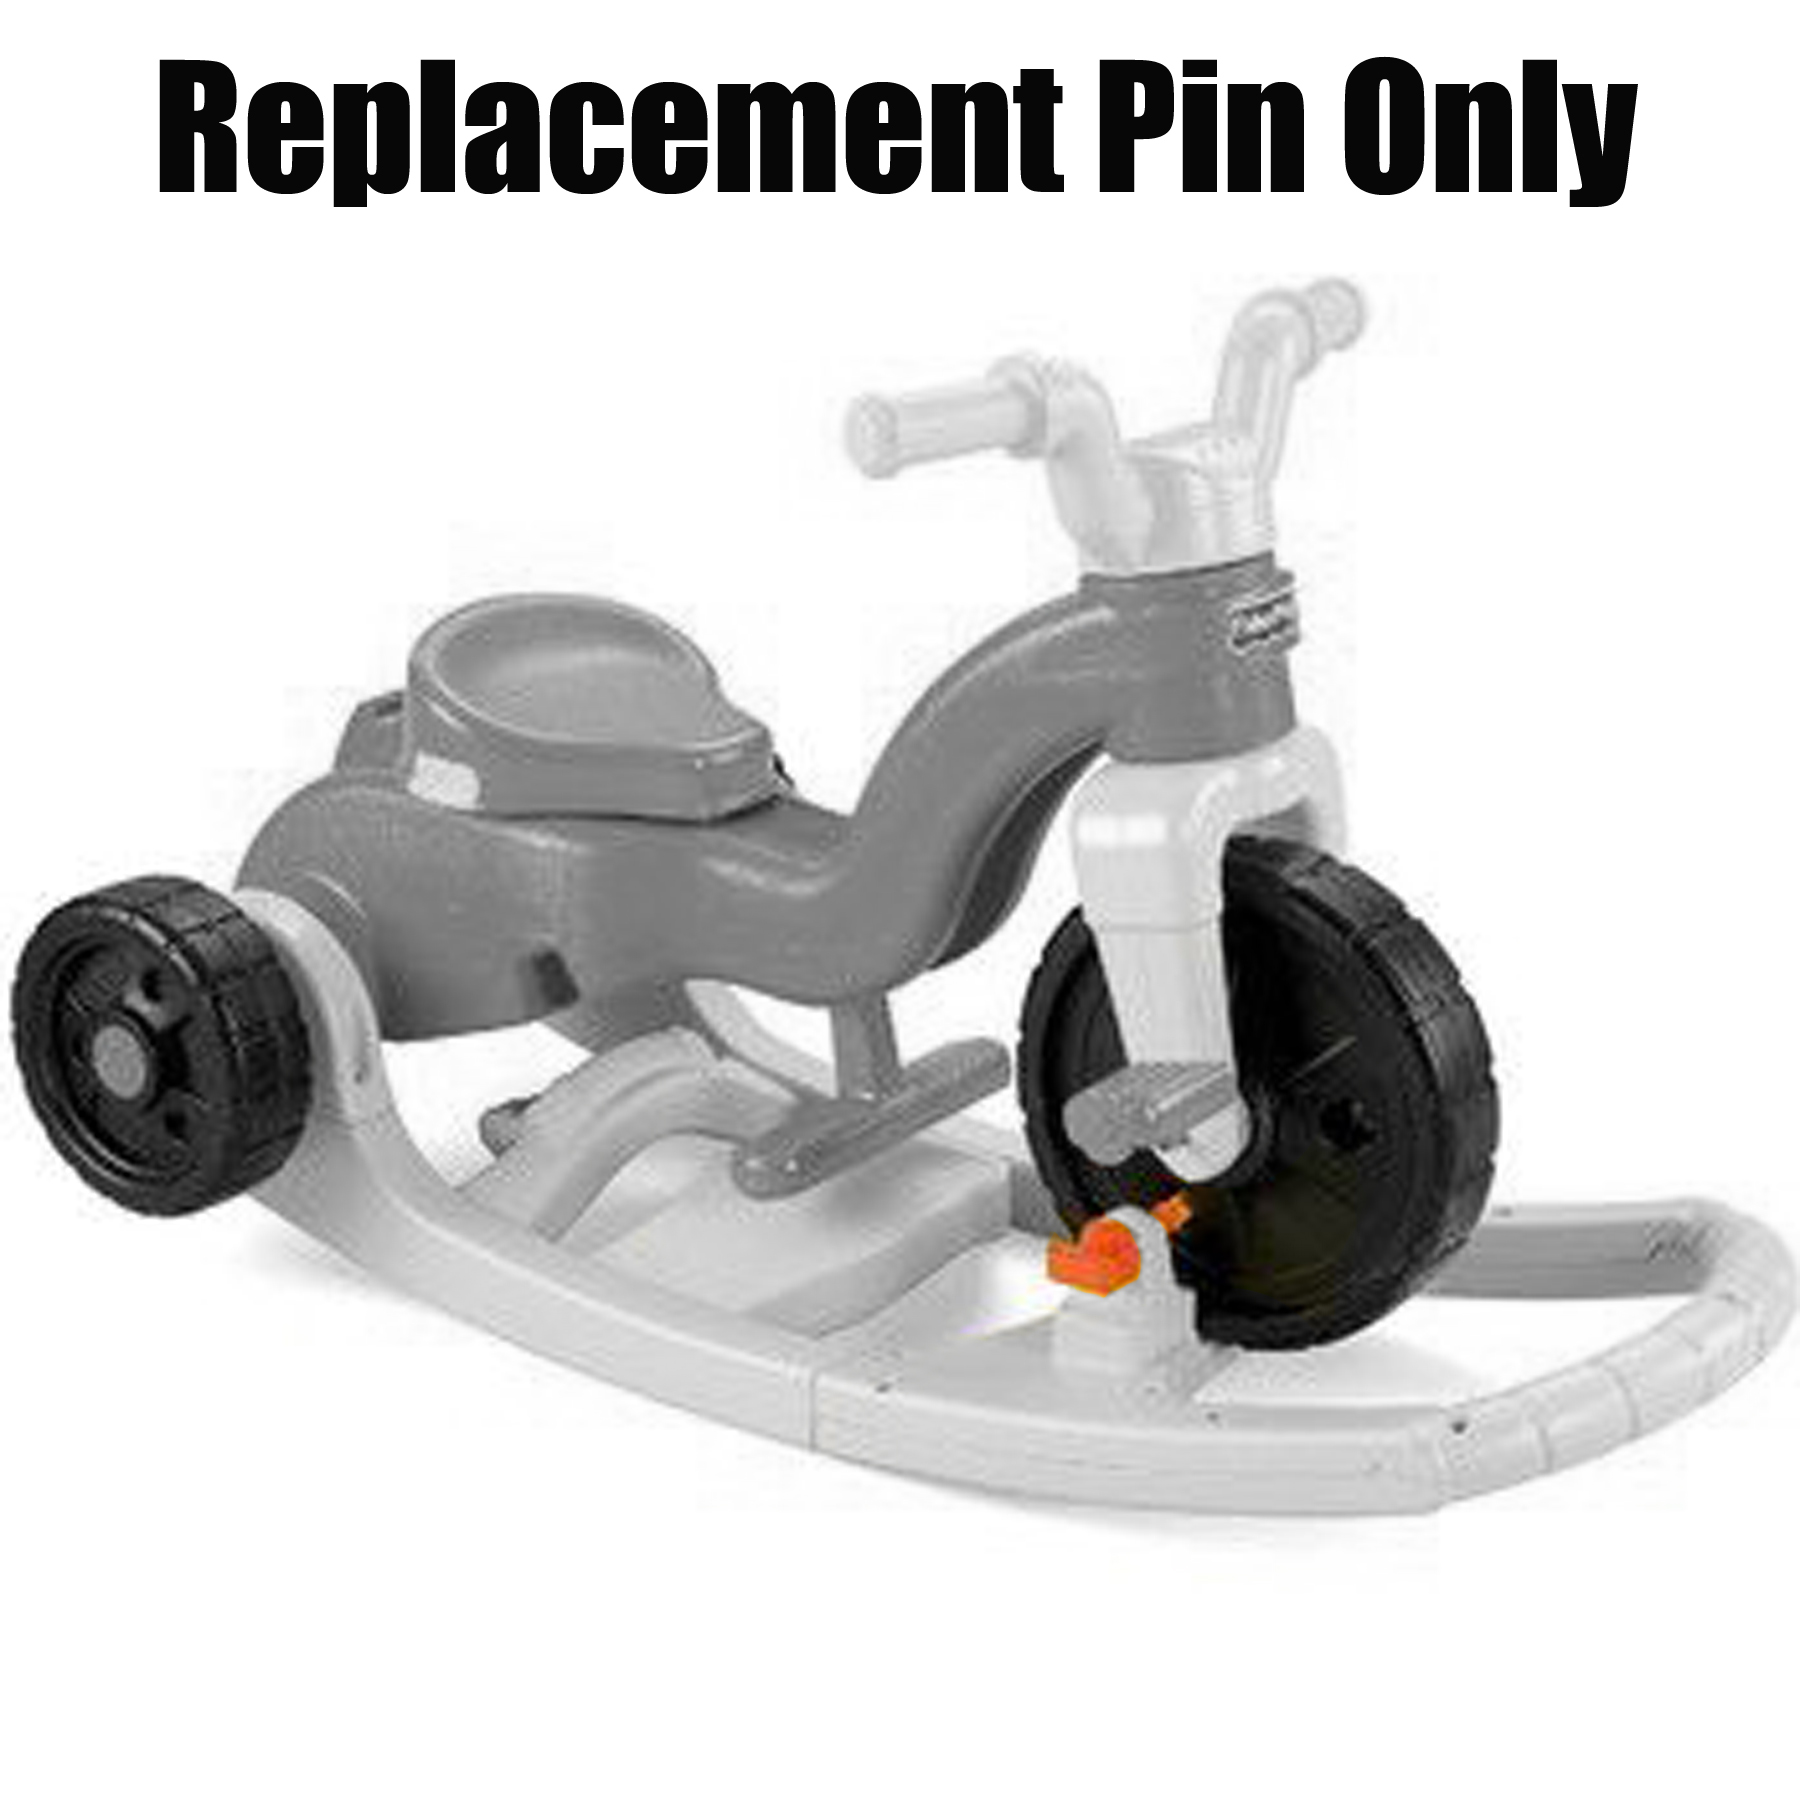 Fisher-Price Rock Roll N Ride Trike Replacement Pin